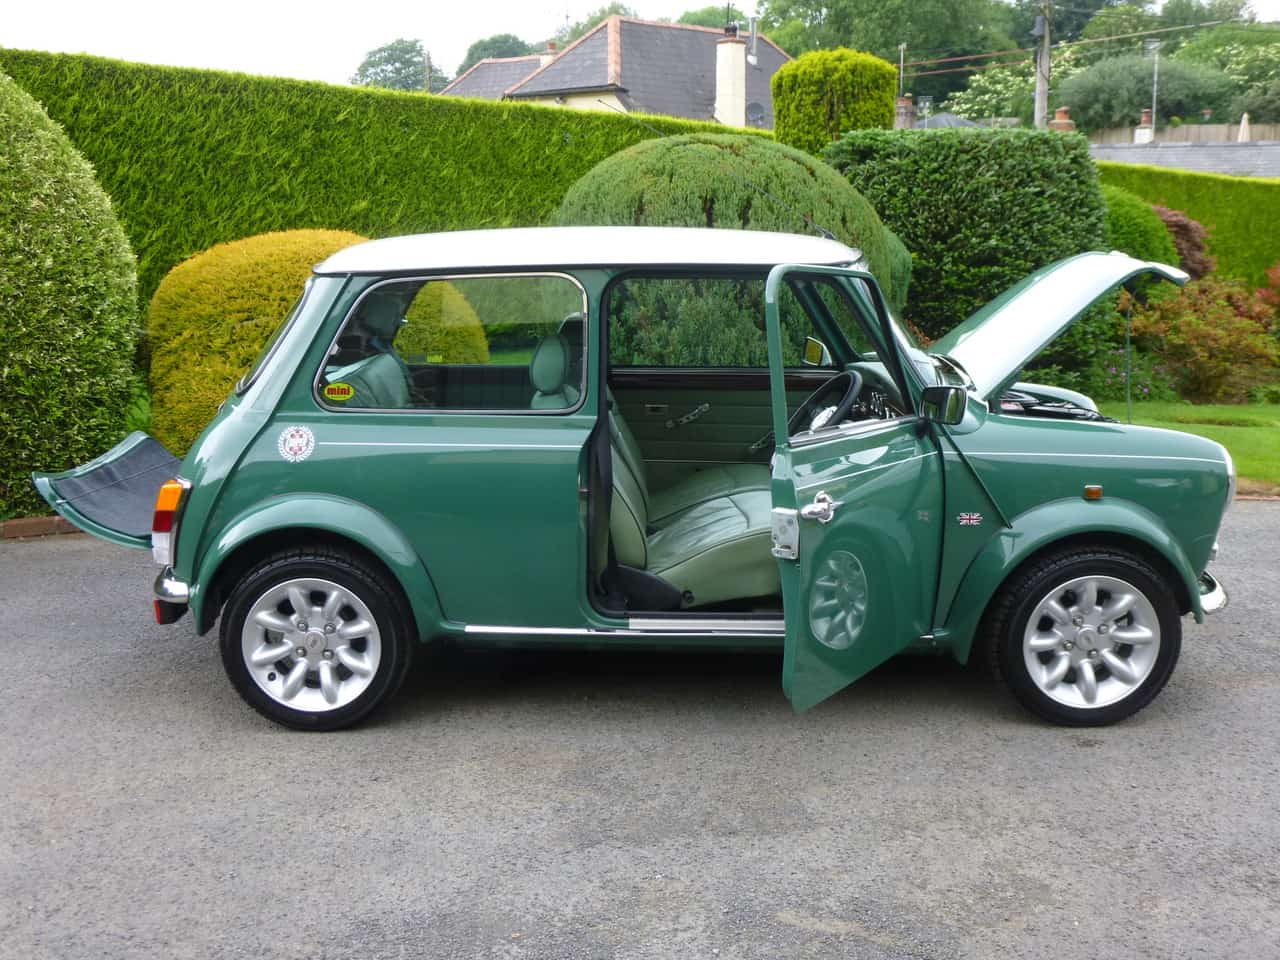 ** NOW SOLD ** Outstanding John Cooper Garages S Works Mini In Show Winning Condition.